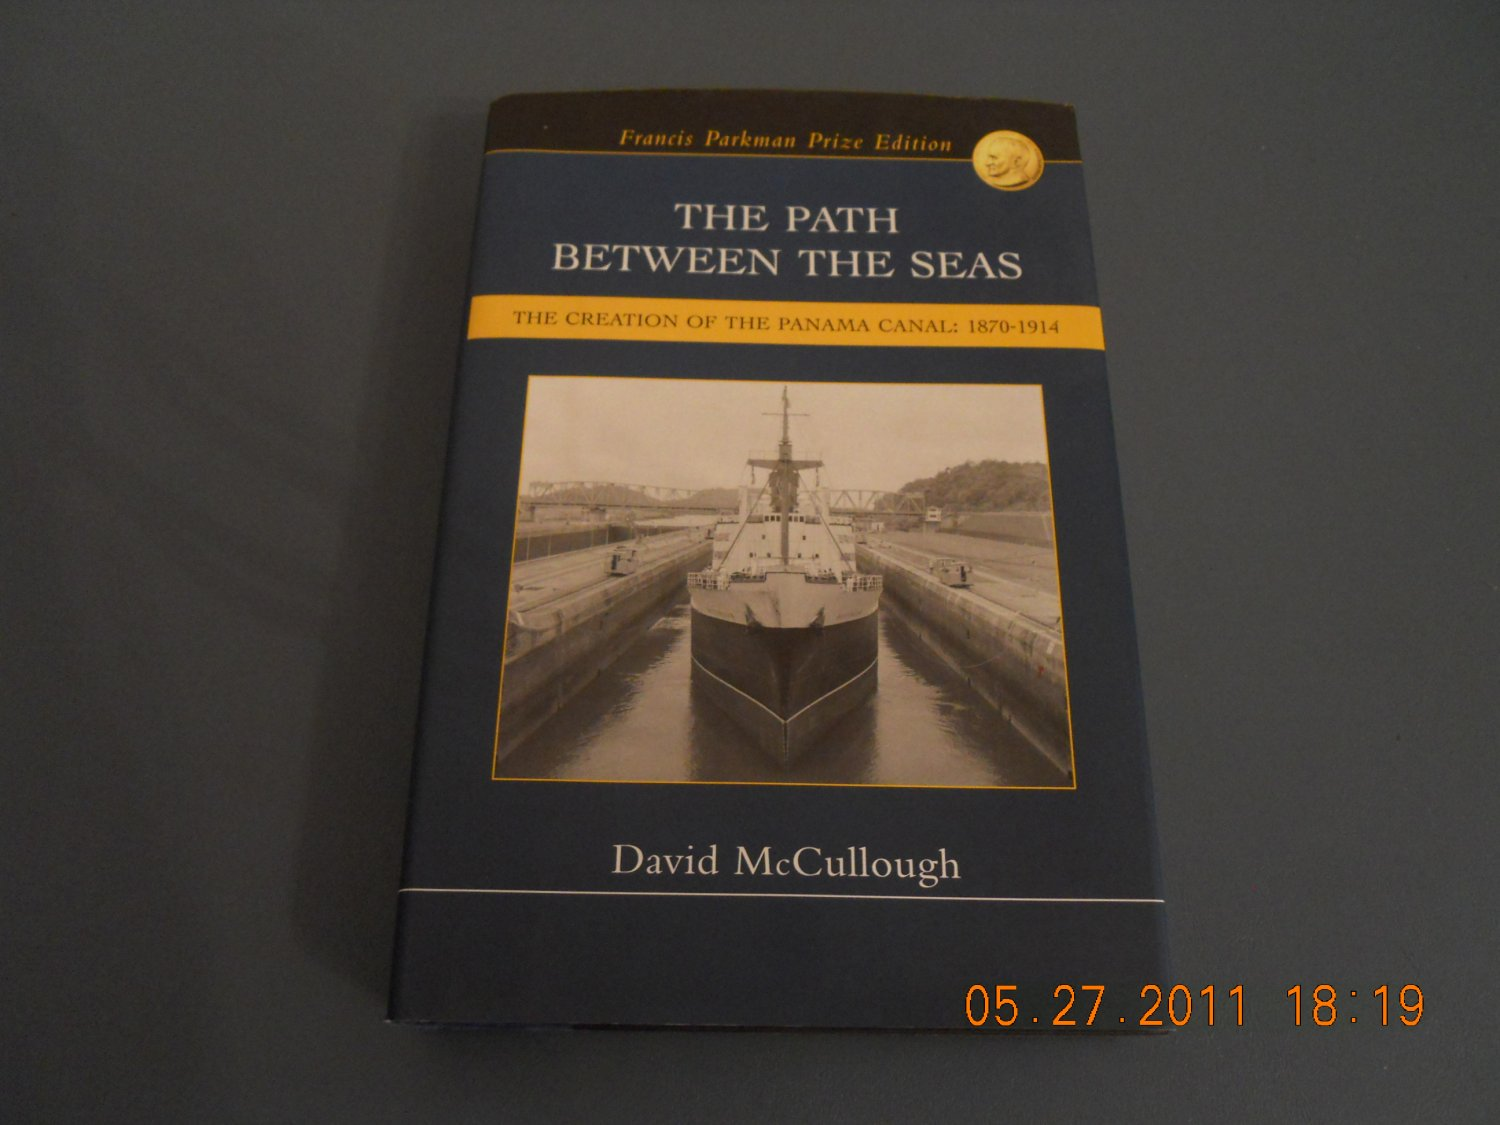 The path between the seas: The creation of the Panama Canal, 1870-1914 Hardcover